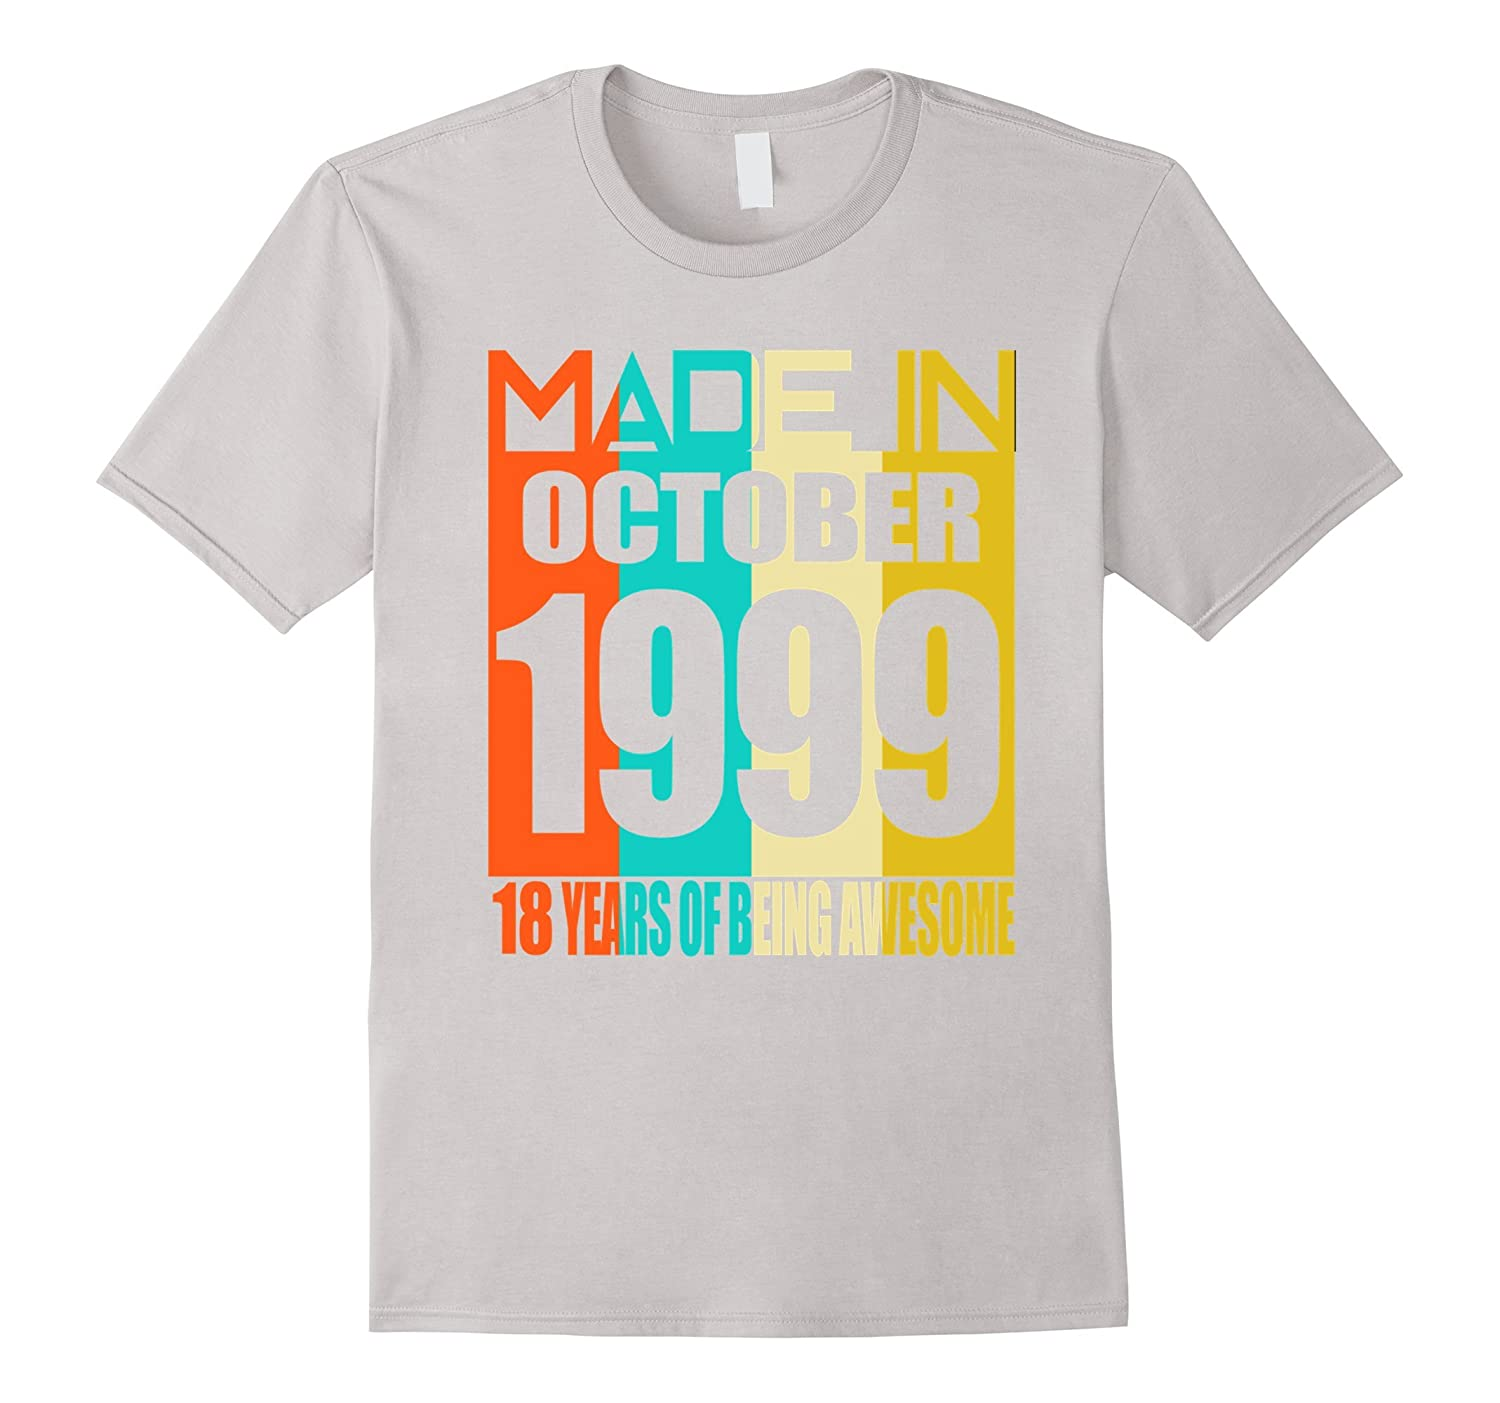 October 1999 18th Birthday Gifts 18 yrs old Bday T-shirt-TJ